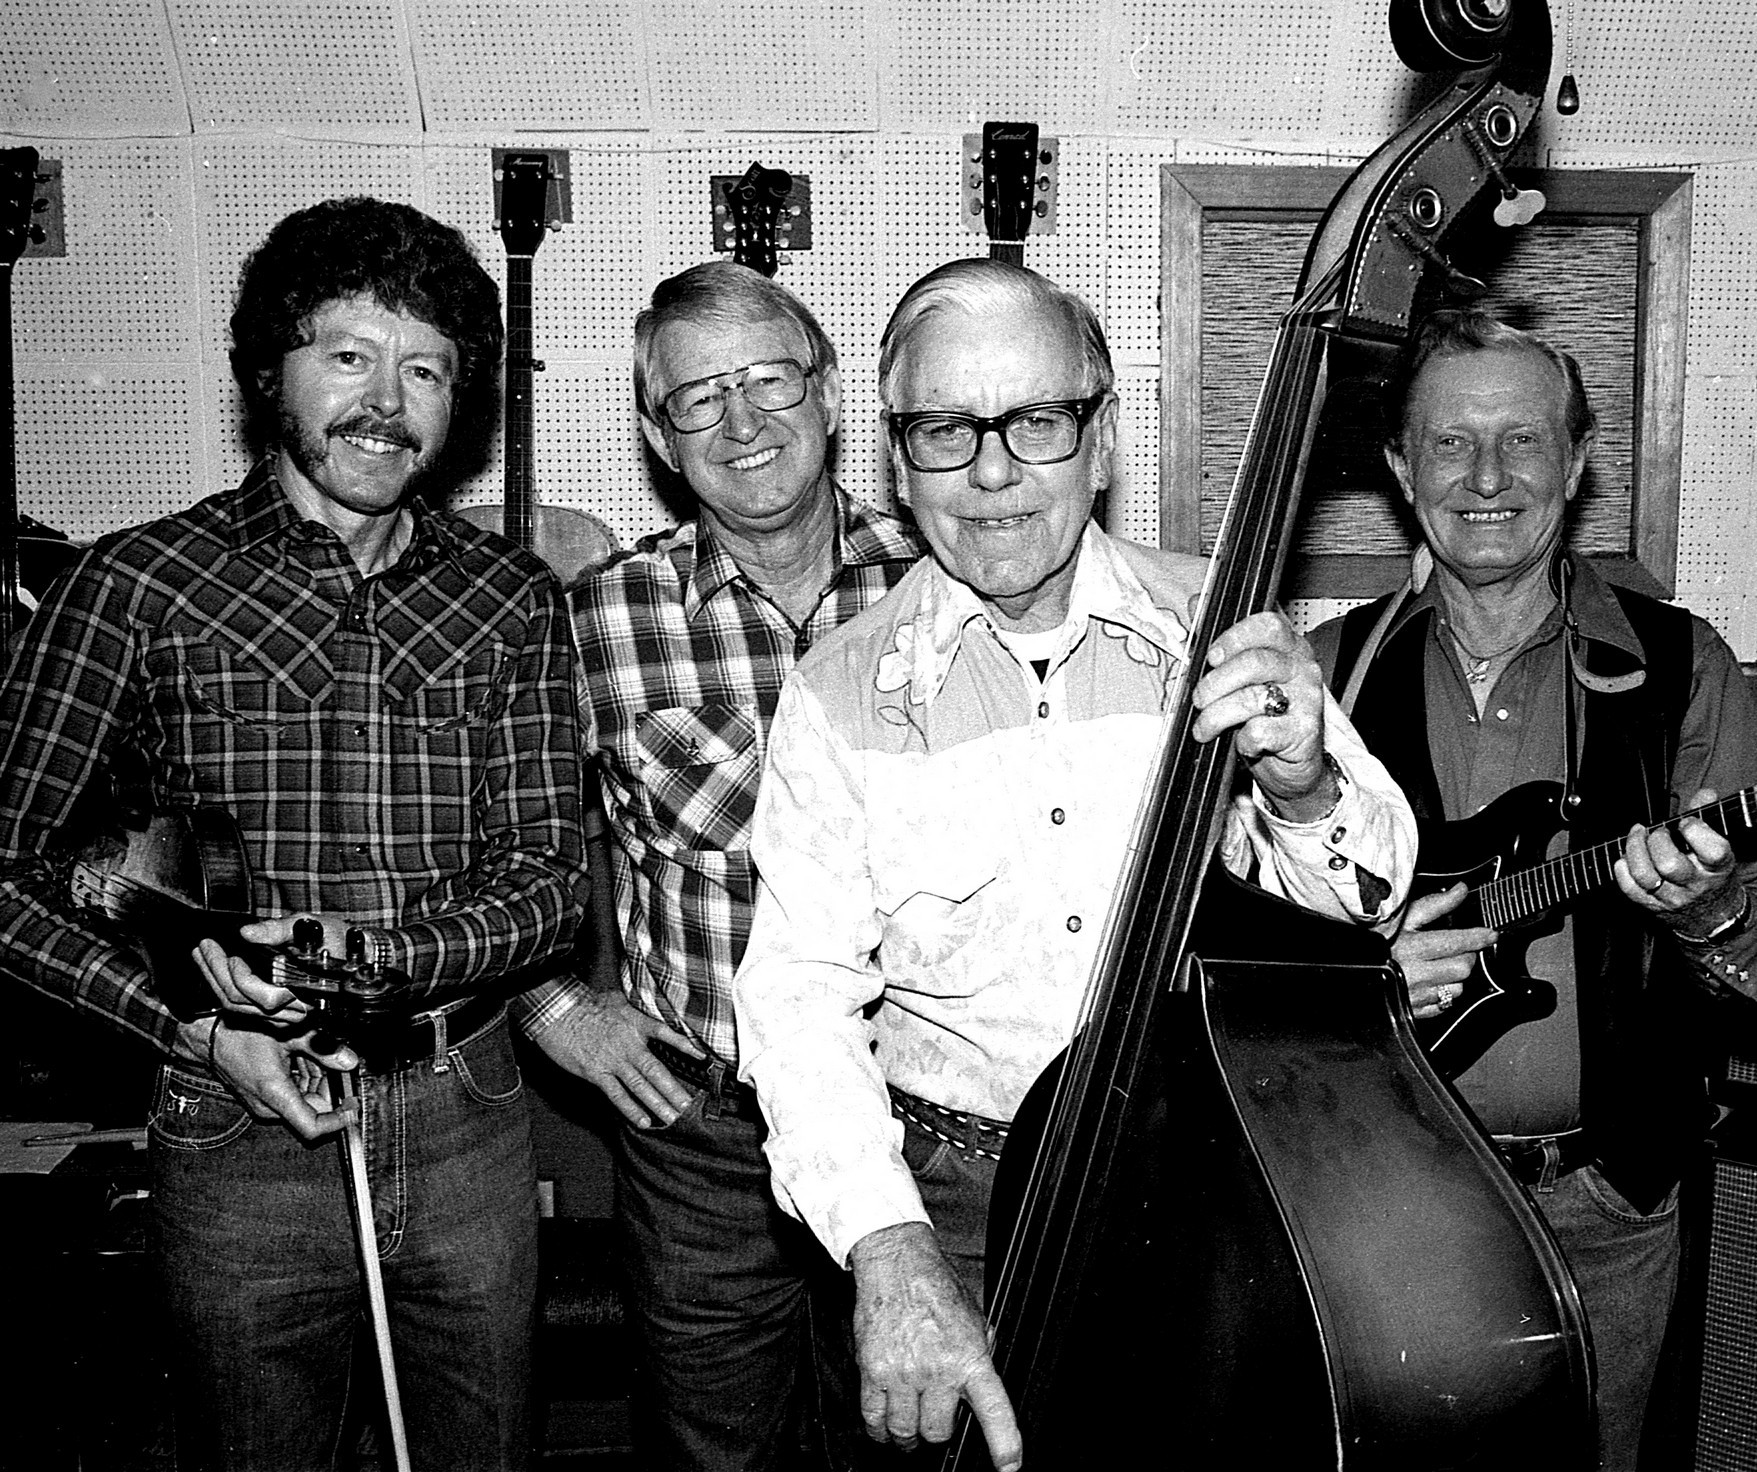 Kenneth Lovelace, Roy Cooper, Dexter Johnson og Keevel Hendon på Johnson' s home studio, c. 1976. (Foto venligst udlånt af Pik Cooper.)